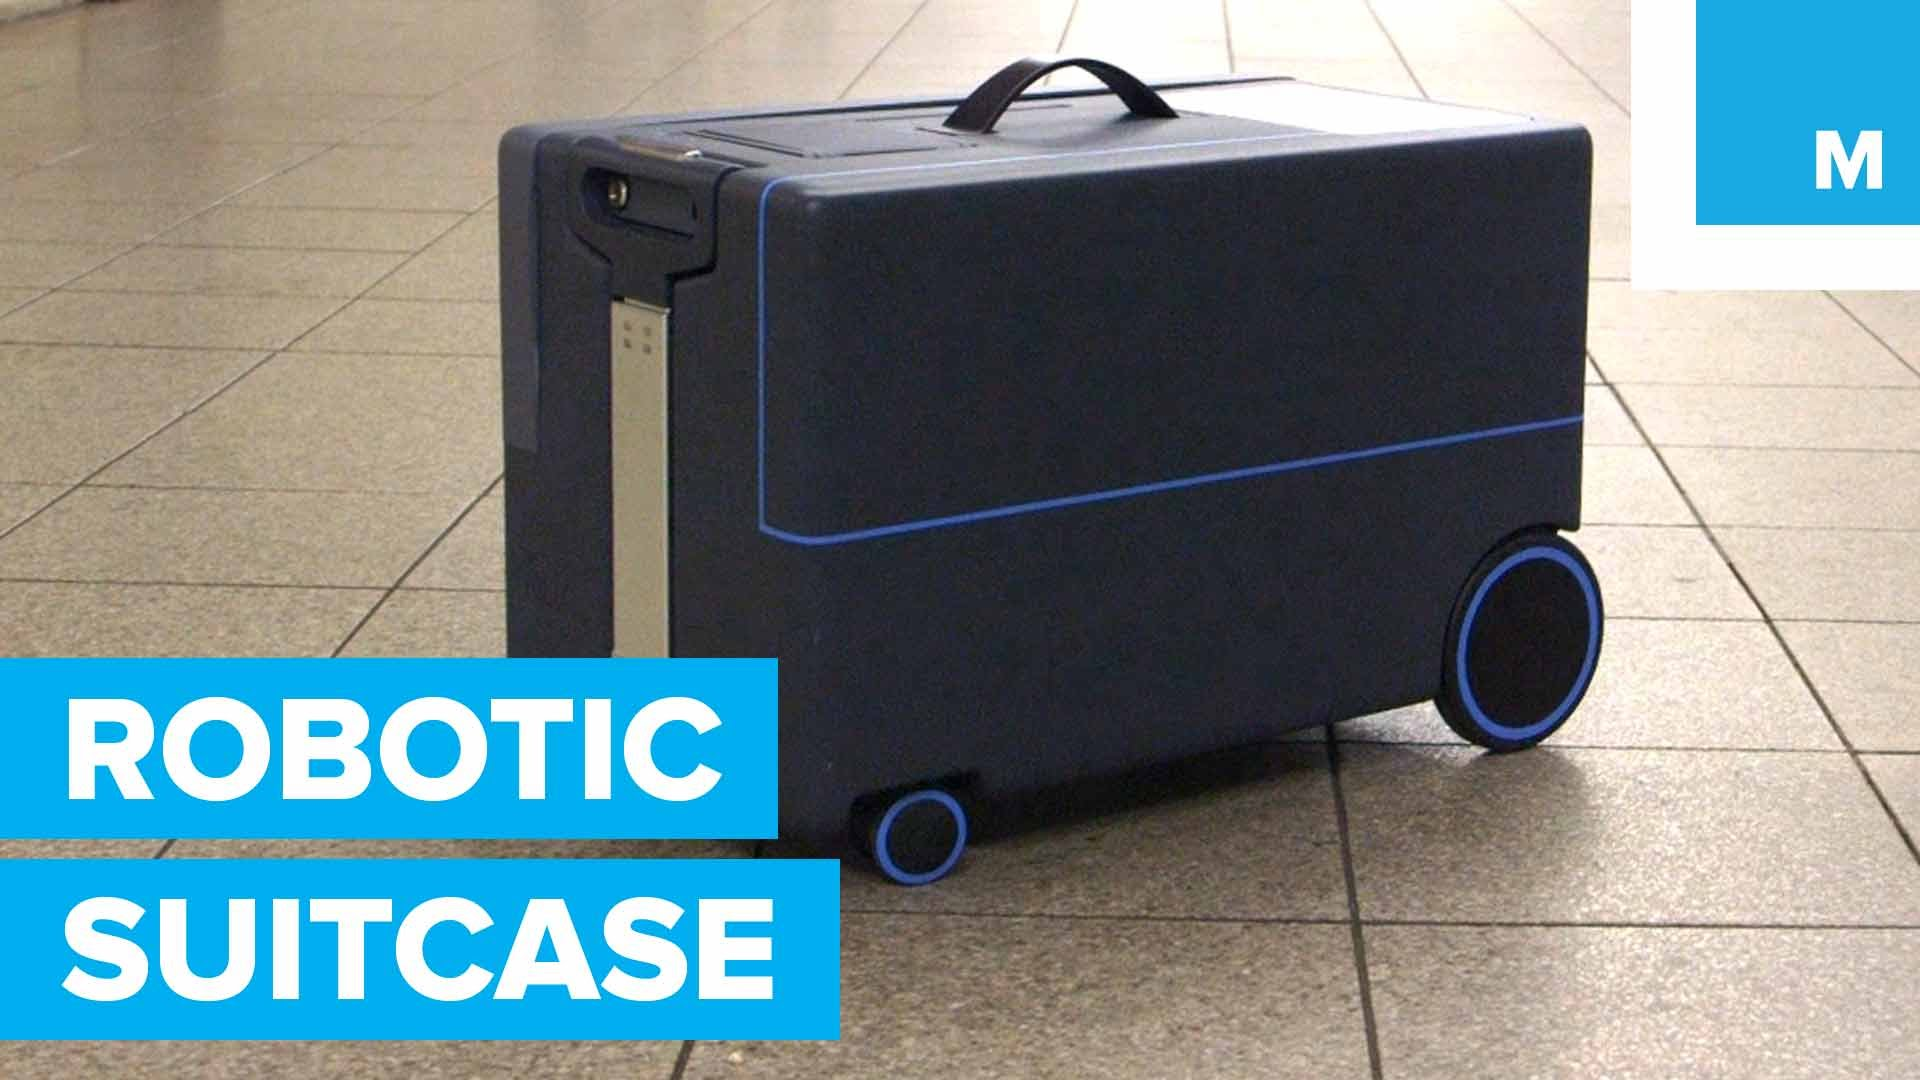 This Robotic Suitcase Follows its Owner Around